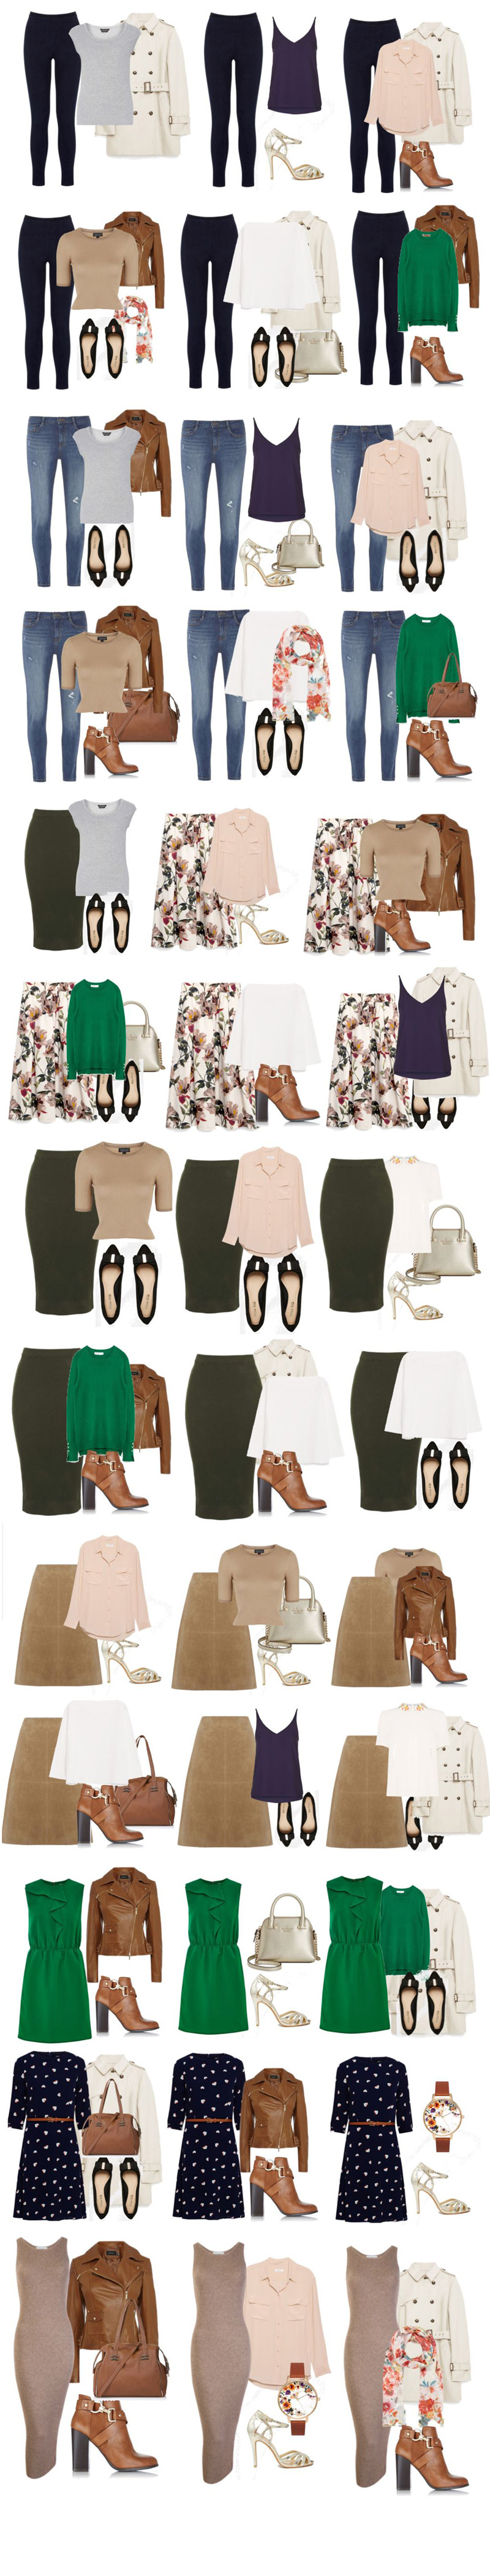 capsule wardrobe outfit combinations